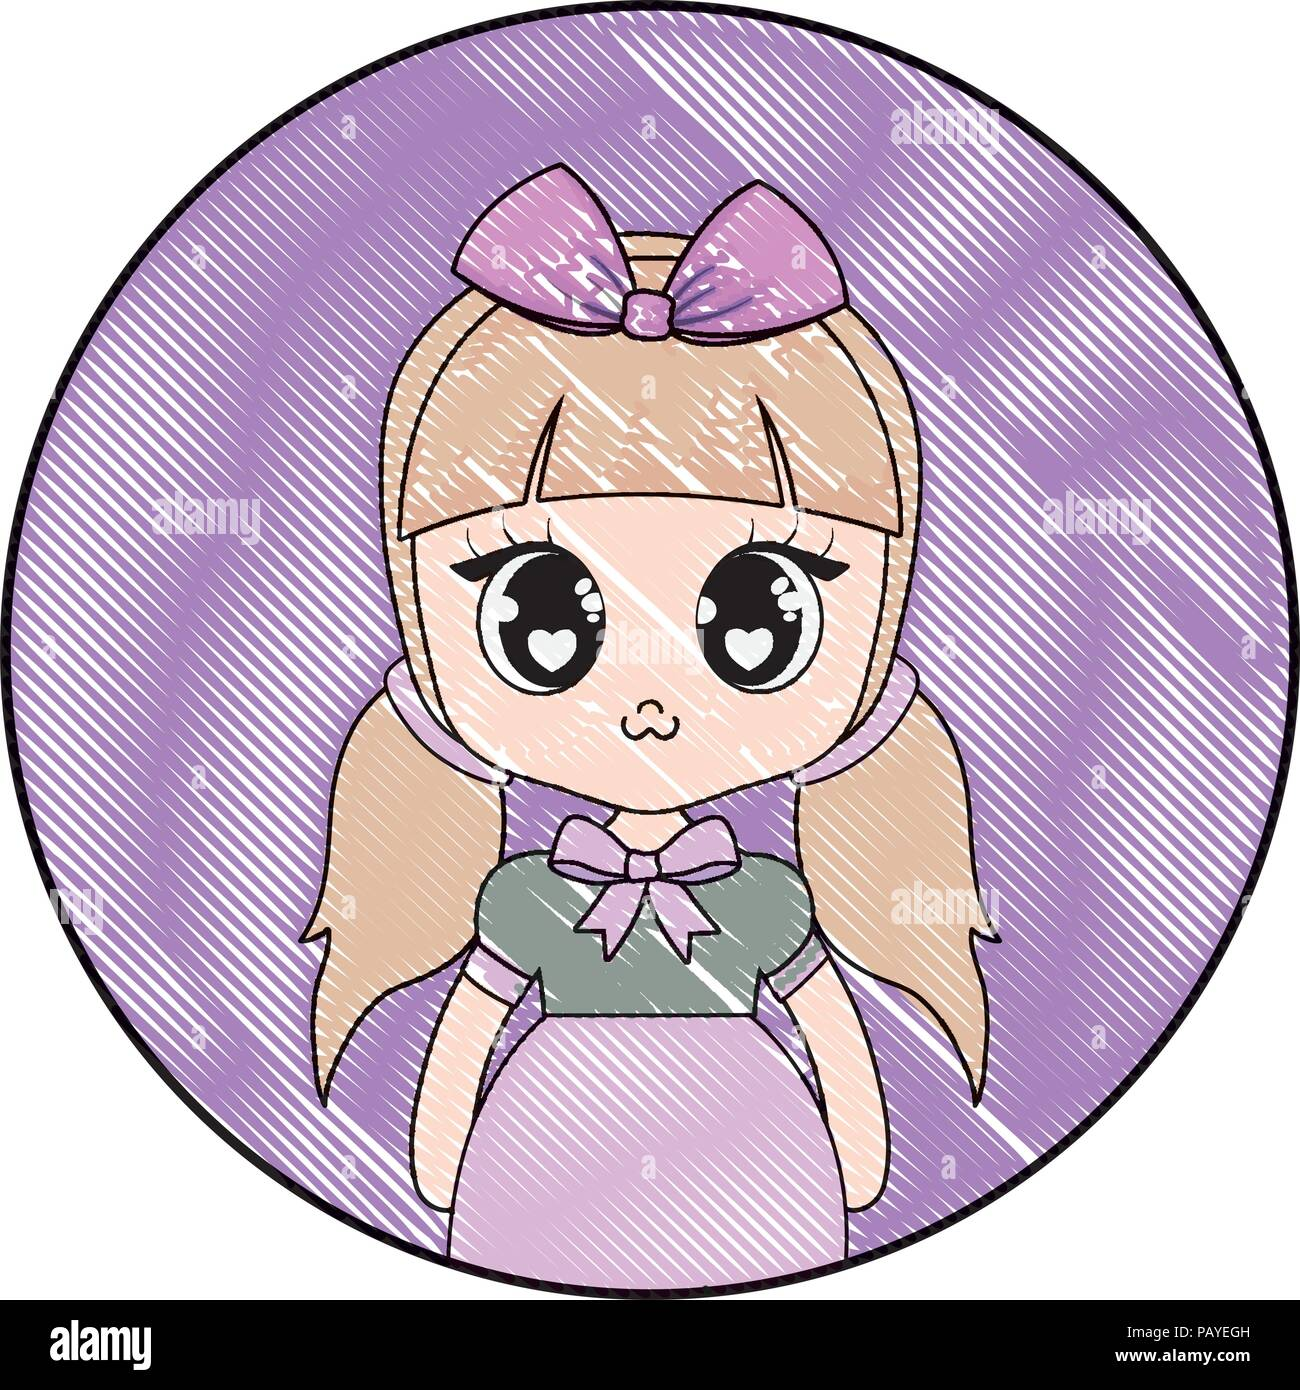 Cute Anime Girl Over Decorative Circular Frame And White Background Vector Illustration